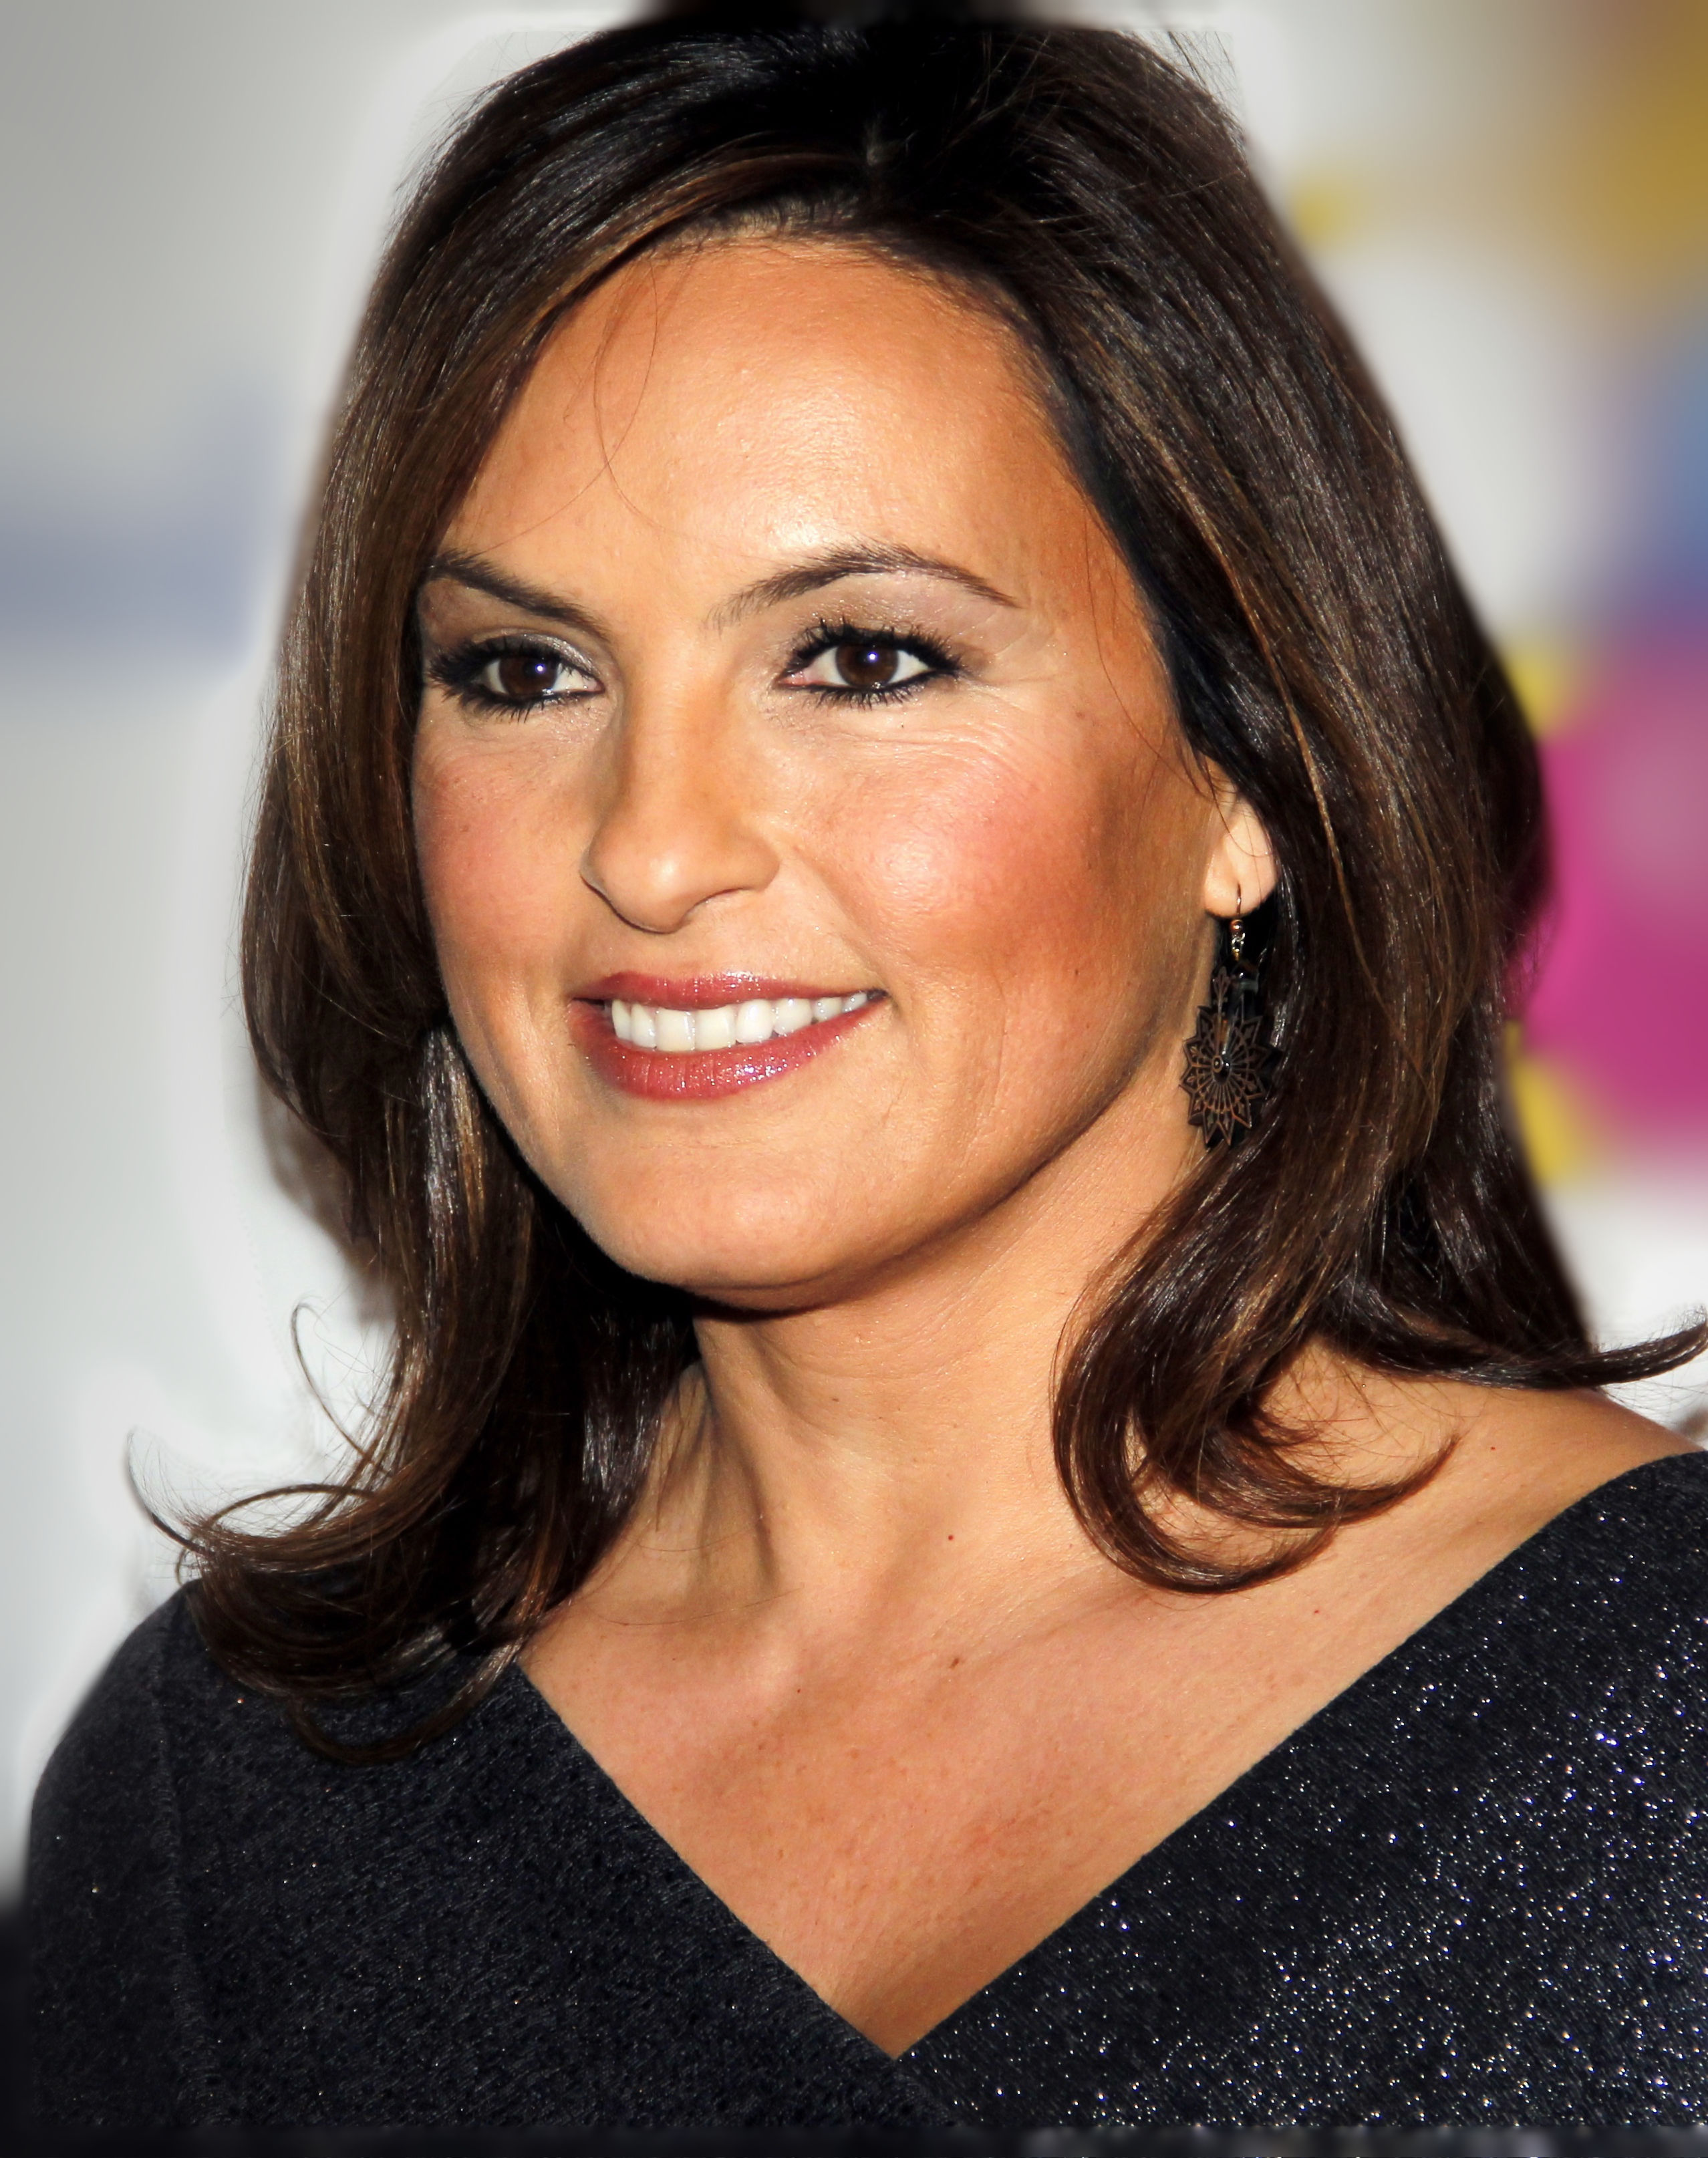 The 54-year old daughter of father Mickey Hargitay and mother Jayne Mansfield Mariska Hargitay in 2018 photo. Mariska Hargitay earned a  million dollar salary - leaving the net worth at 45 million in 2018